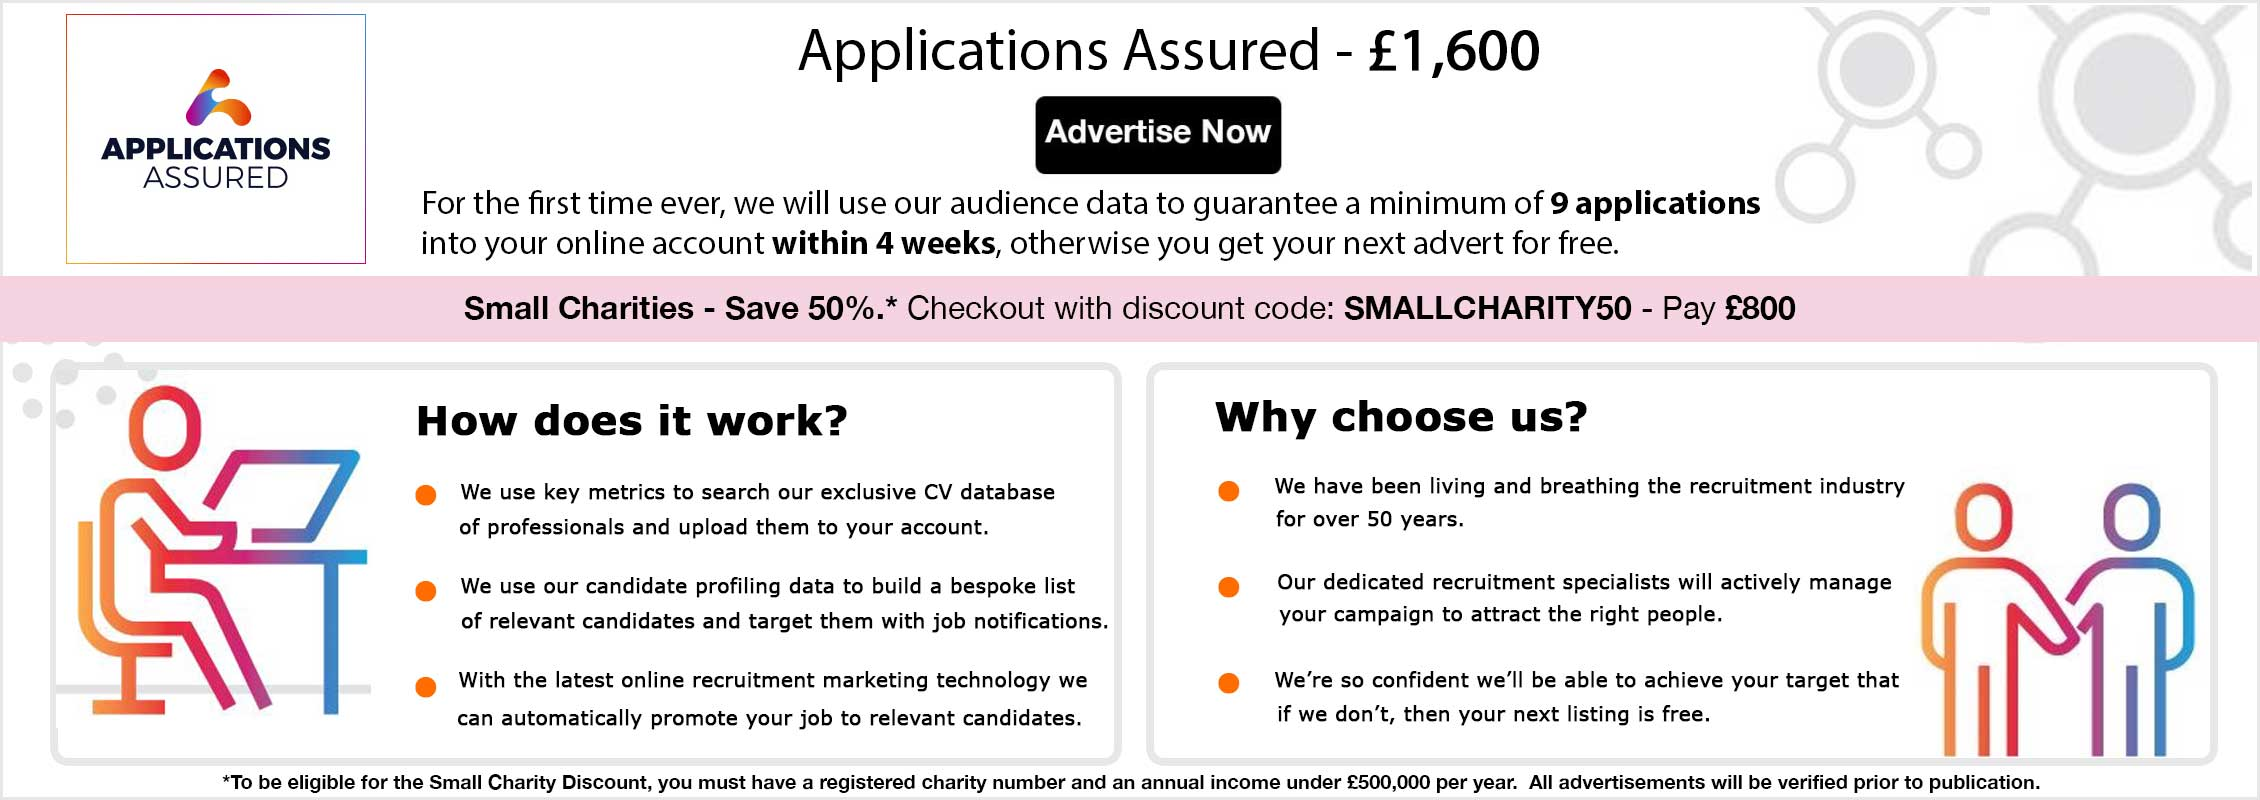 Applications Assured. £1,600. Advertise Now. Receive a minimum of 9 guaranteed applications or your next advert free. Take the worry out of your hiring process. We use CV, Profile and Search data to match candidates for you. Optimised advert including your logo, header banner and a tailored colour palette (4 weeks). Bespoke, targeted email including CV search, match and alert. Tailored programmatic advertising campaign targeting relevant job seekers. Social Media listing - promoted to our Twitter followers. Candidate Management Tool - view the status of your posting and control how you receive applications. To be eligible for the Small Charity Discount, you must have a registered charity number and an annual income under £500,000 per year. All ads will be verified.